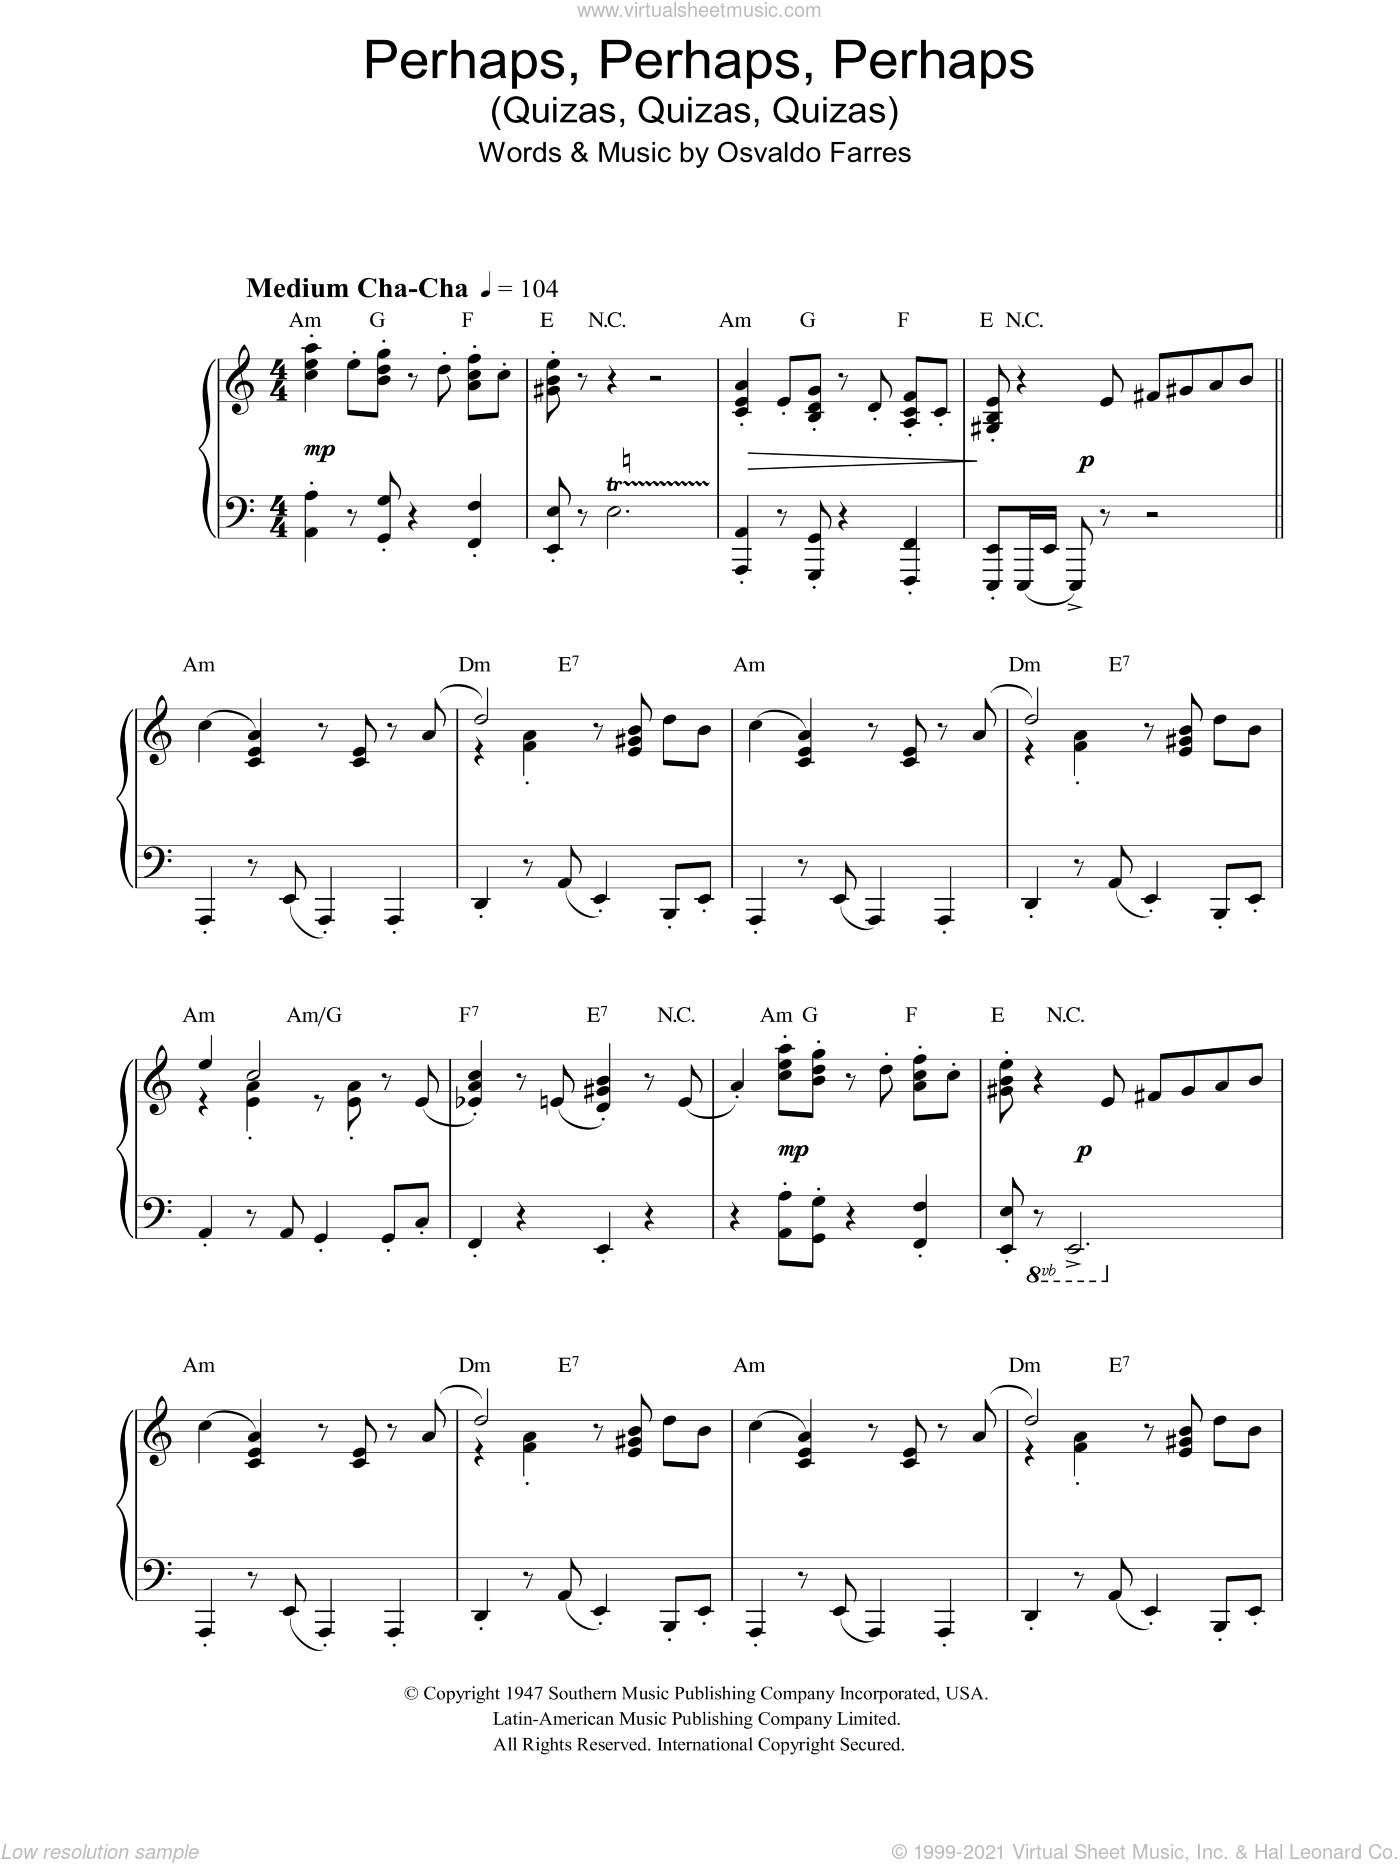 Quizas, Quizas, Quizas (Perhaps, Perhaps, Perhaps) sheet music for piano solo by Osvaldo Farres. Score Image Preview.